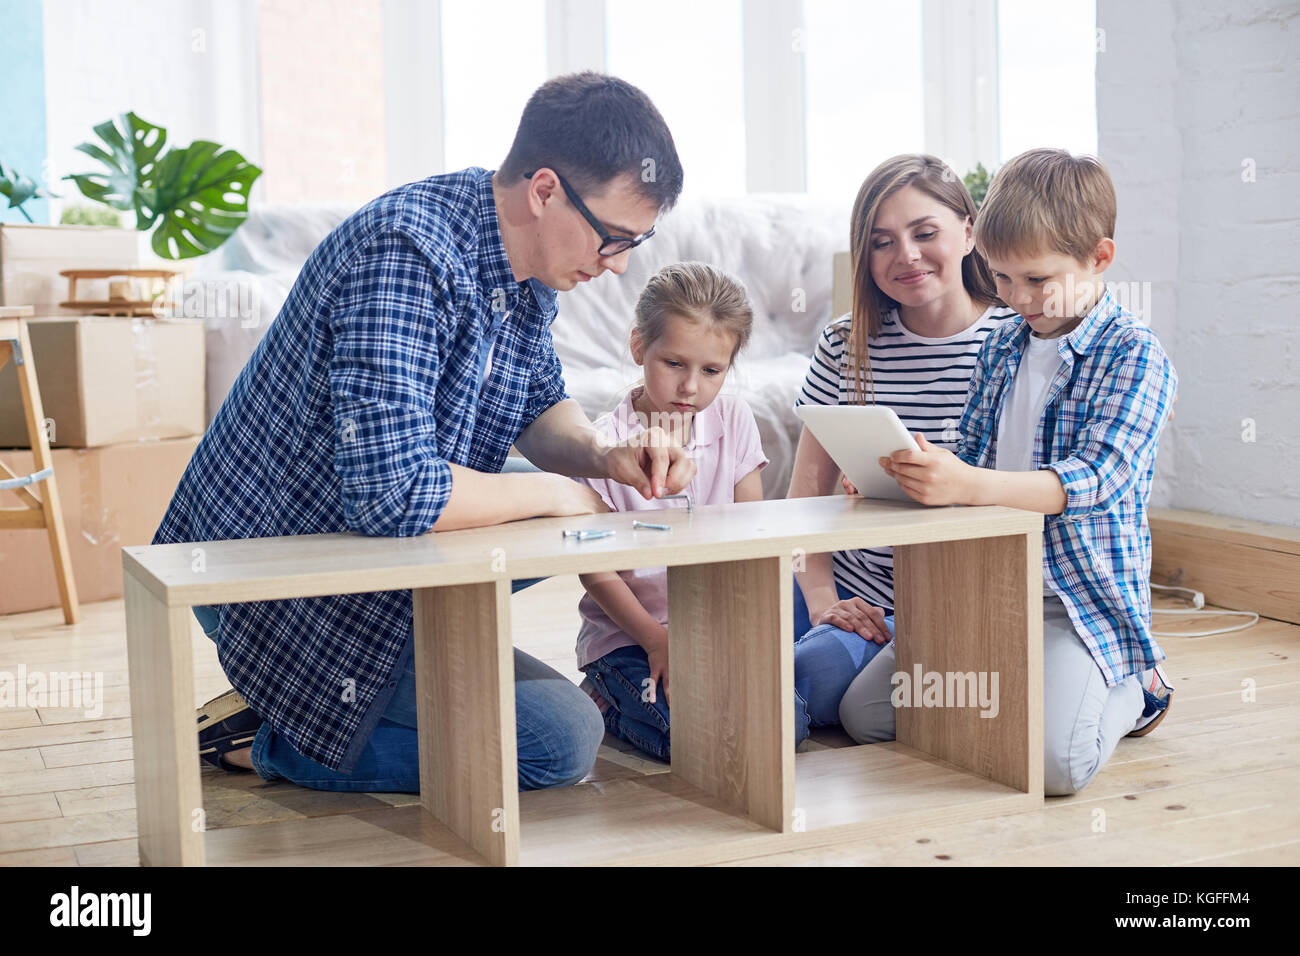 Loving young family of four gathered together at living room of new apartment and wrapped up in assembling wardrobe, Stock Photo